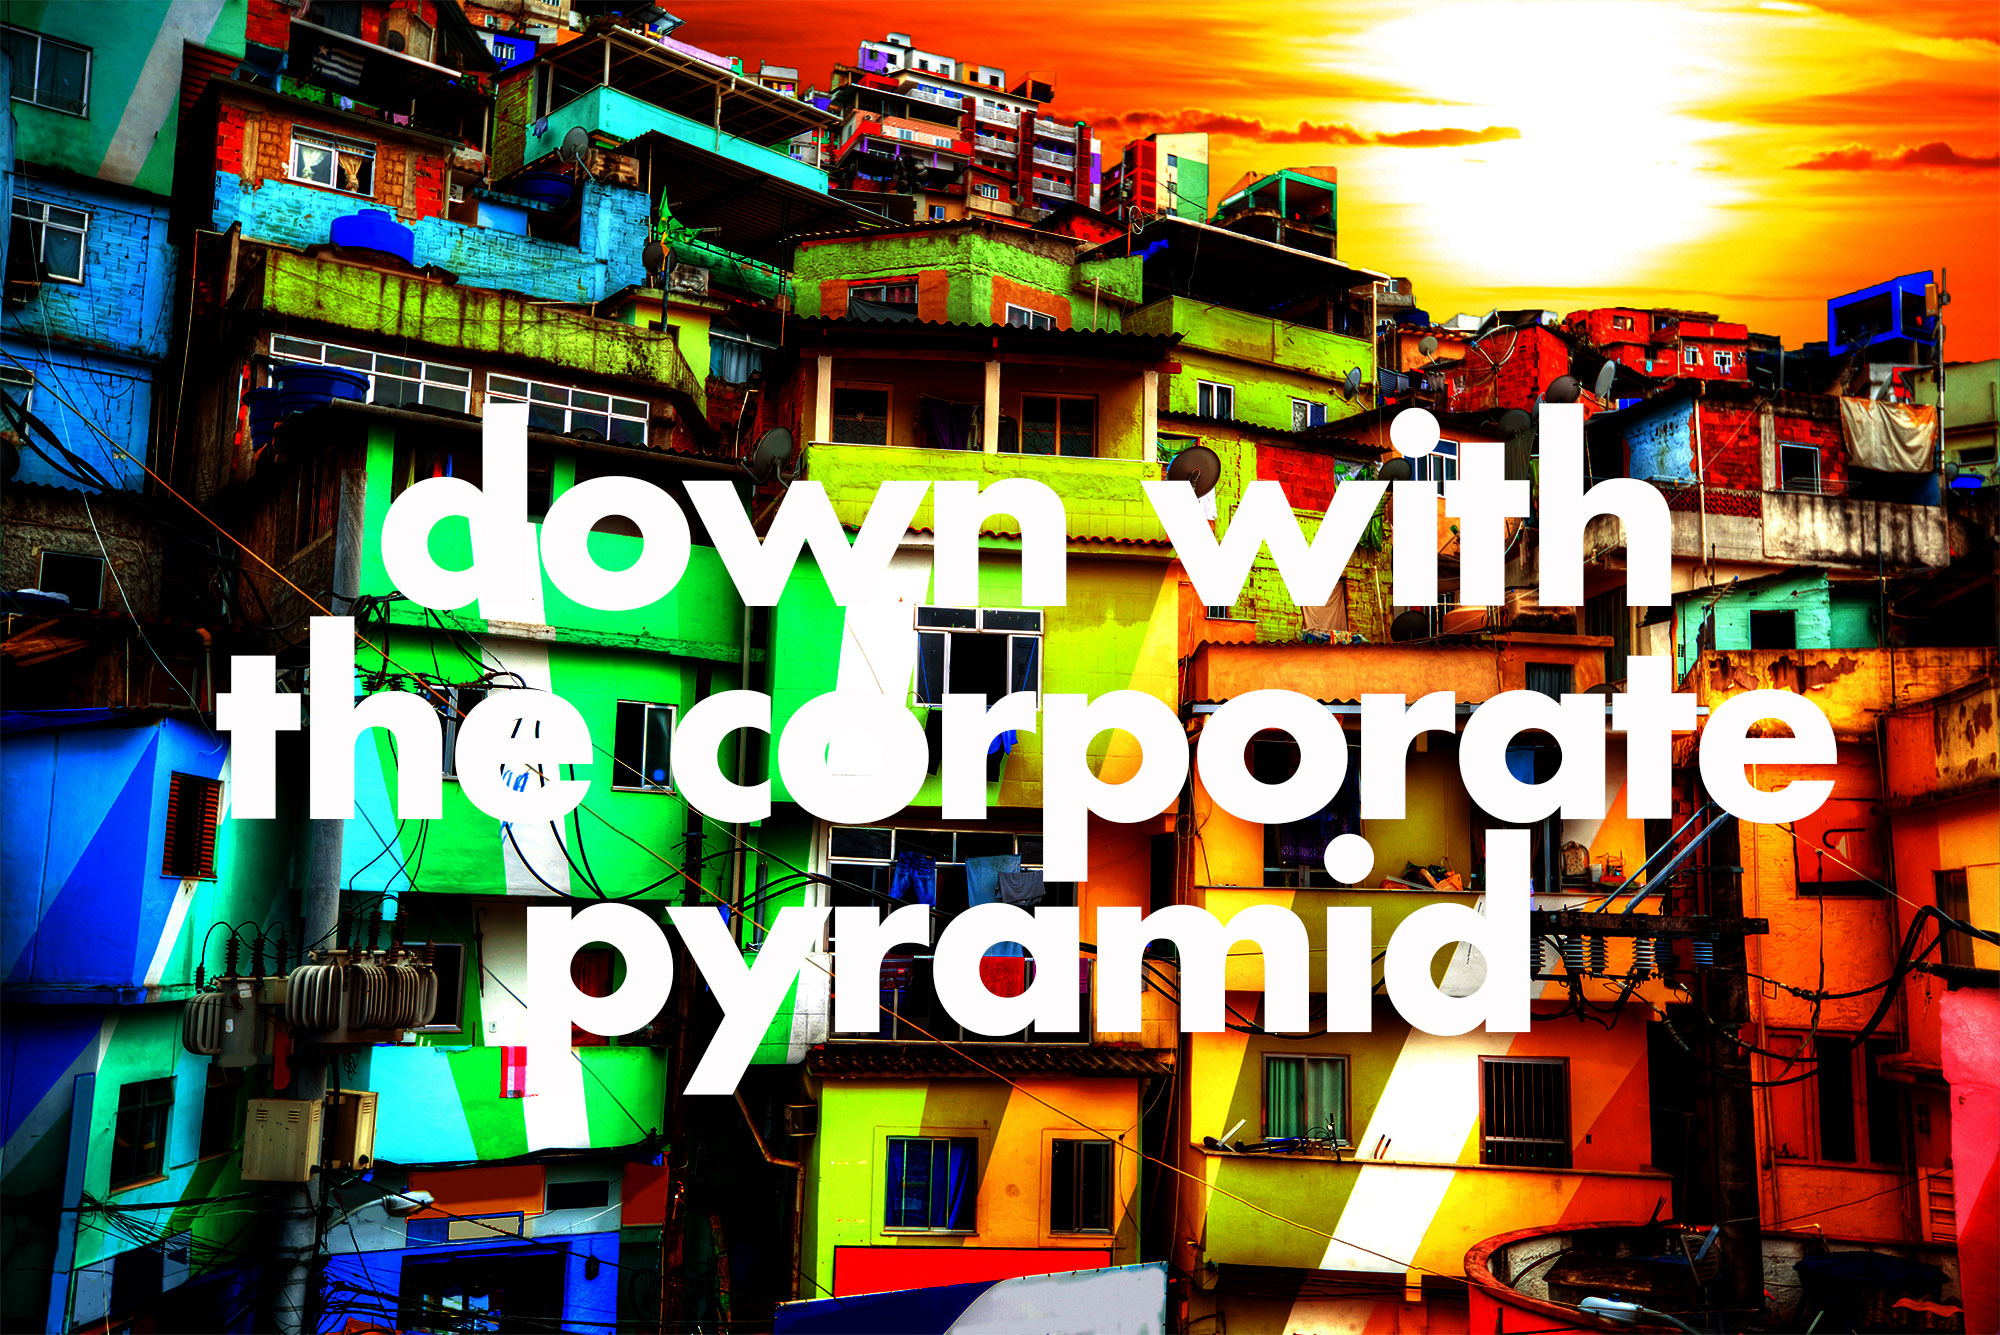 Down with the corporate pyramid